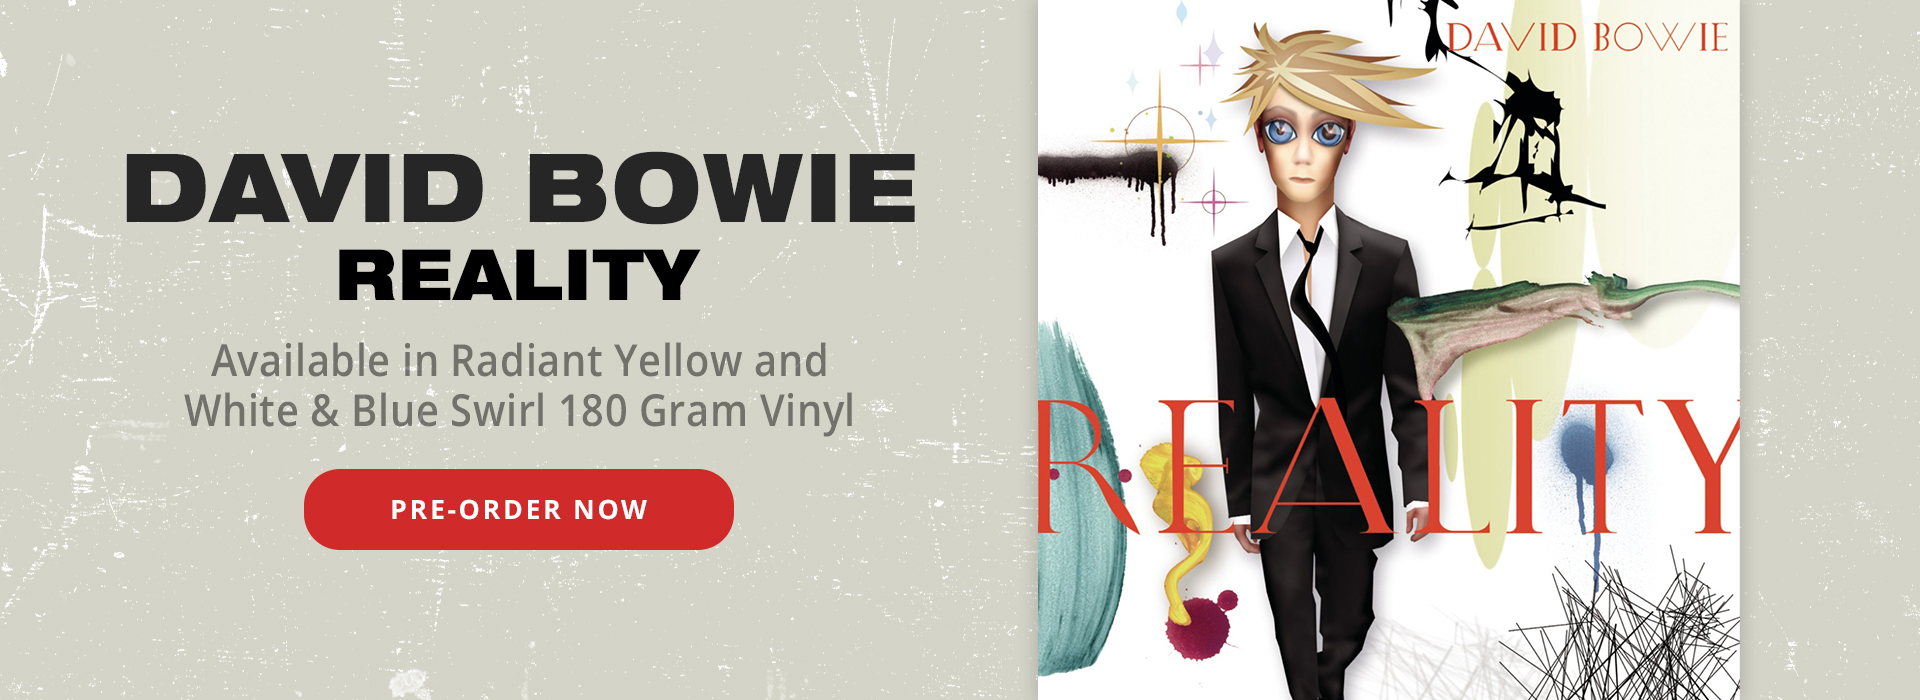 David Bowie Reality | Available in Radiant Yellow and White & Blue Swirl 180 Gram Vinyl | Shop Now!